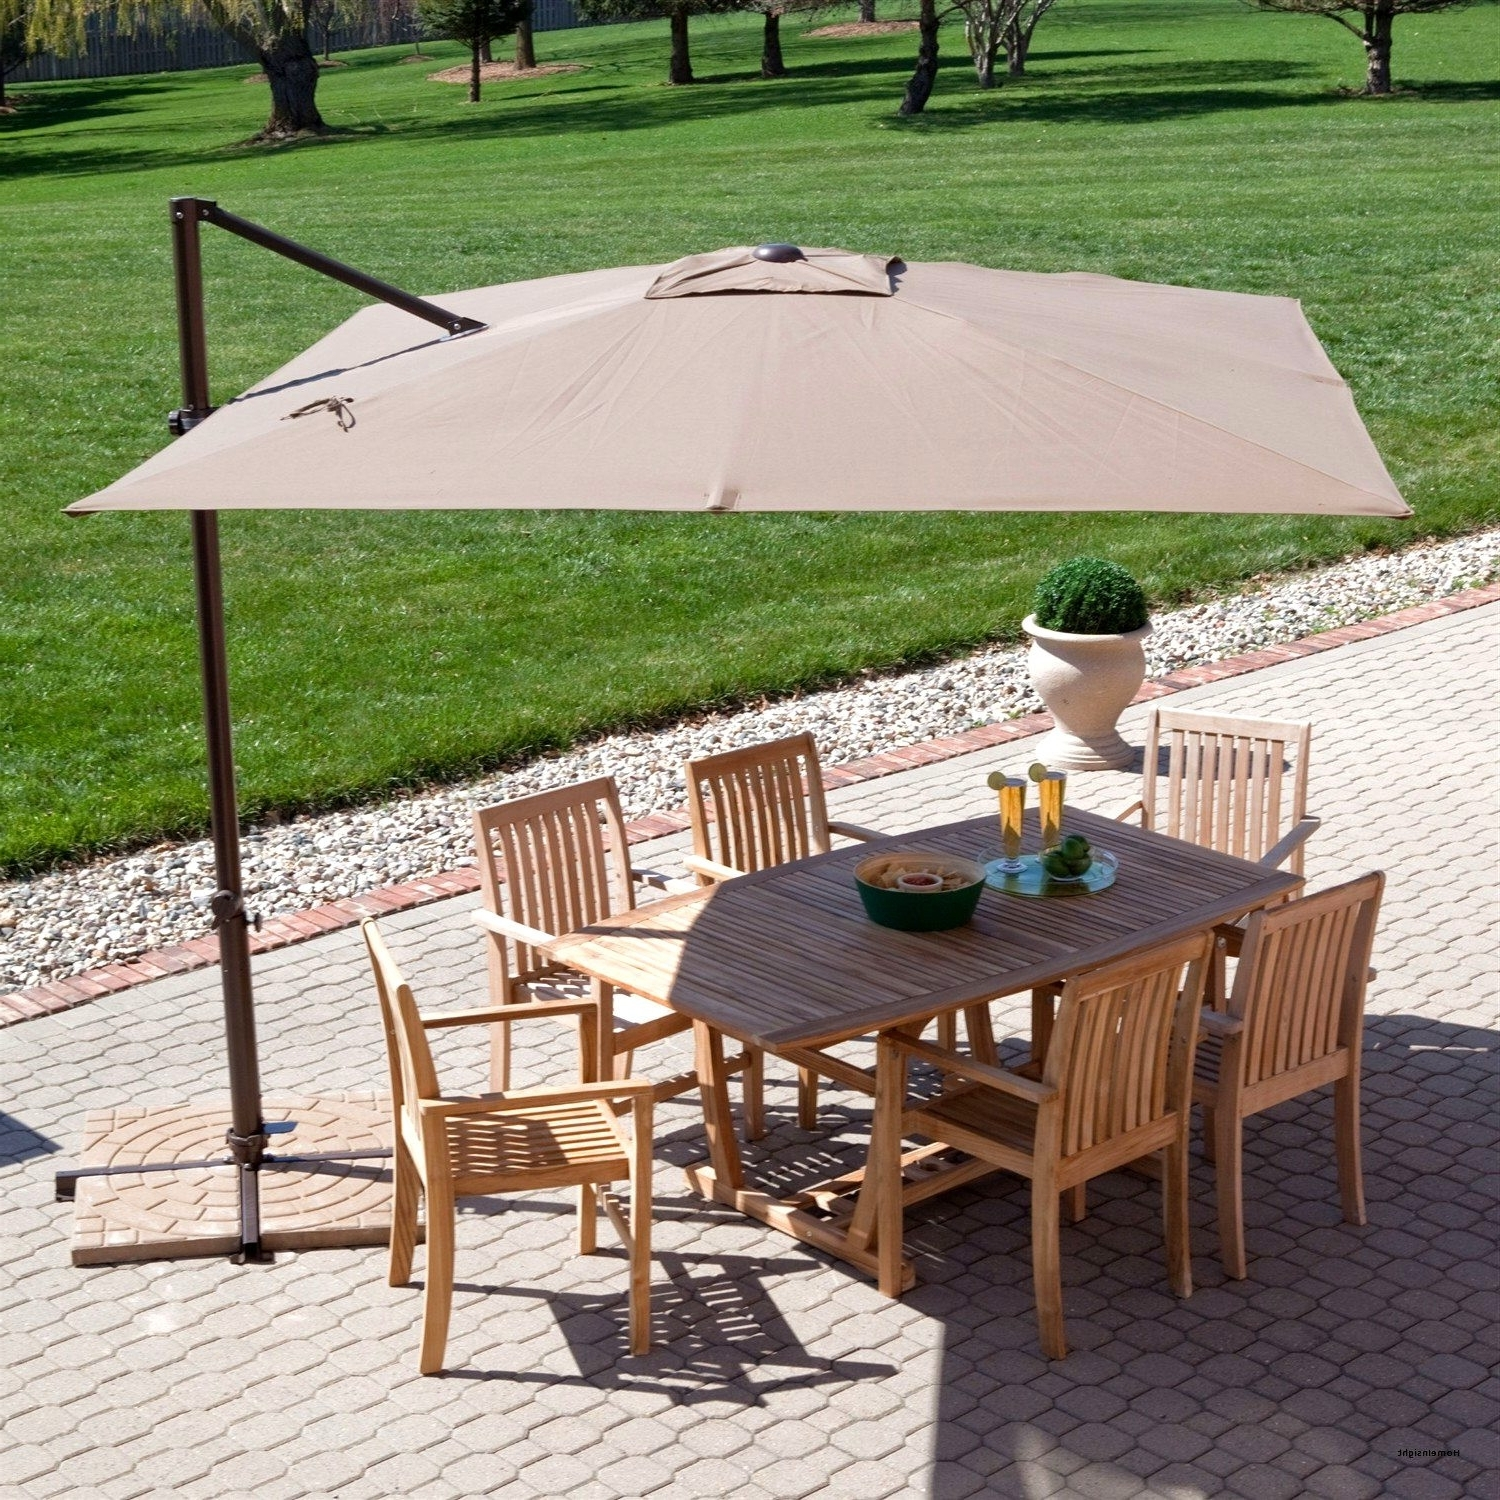 Trendy Big Lots Patio Umbrellas Intended For 25 Fresh Patio Umbrella Big Lots Design Of Coral Coast 8 X 11 Ft (Gallery 13 of 20)